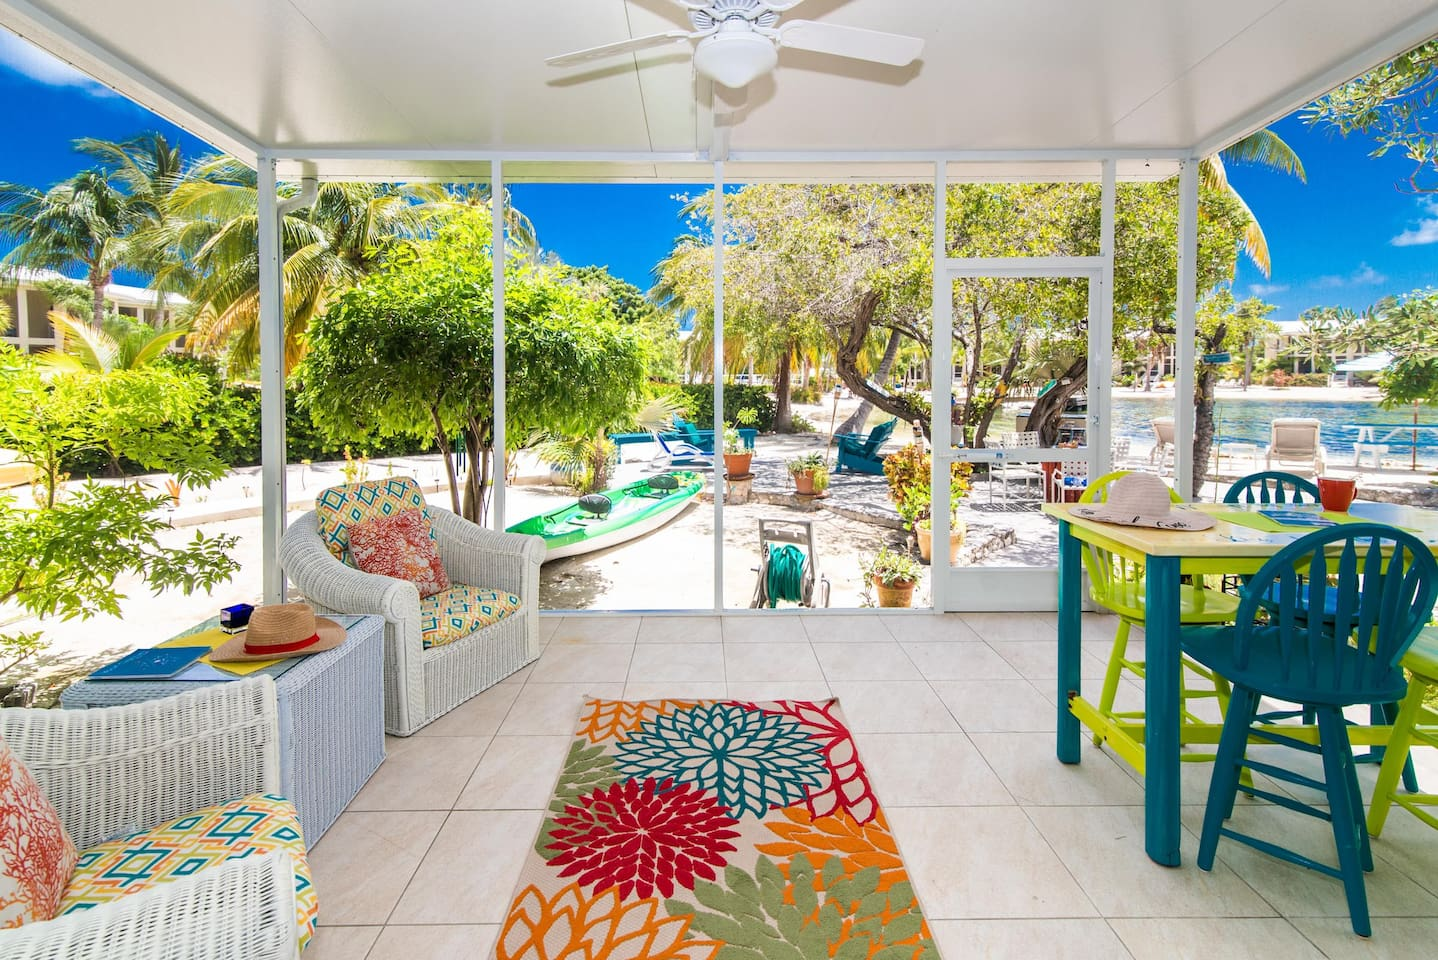 This beautiful  screened in back porch is a great space to hangout after coming from the beach or kayaking. You can have dinner or drinks and enjoy the beauty of the Bioluminescent  Bay at night.  See if for yourself.